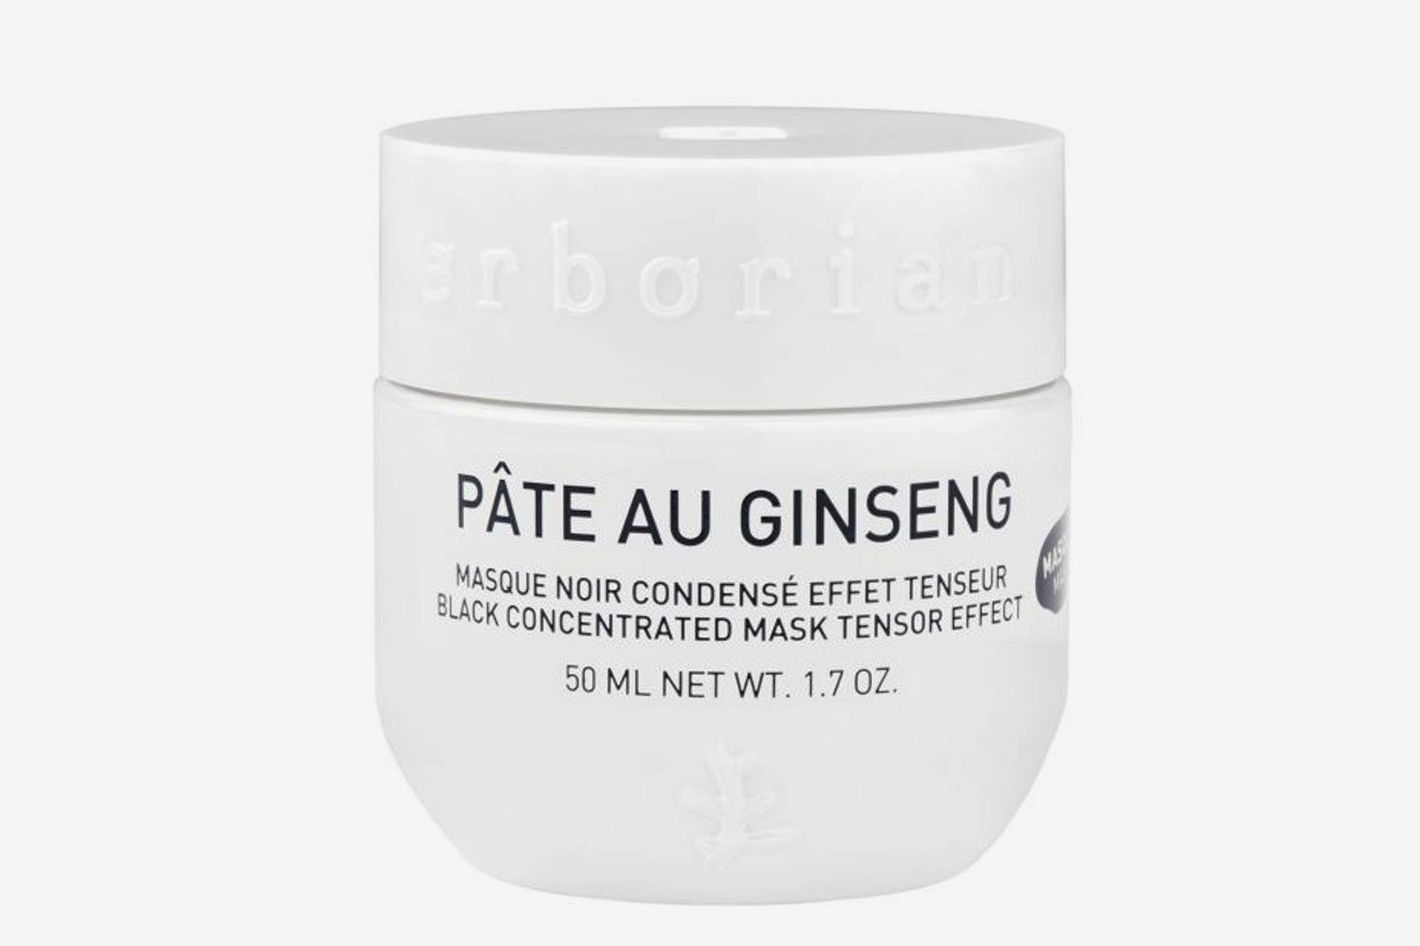 Erborian Pate au Ginseng Black Concentrated Mask